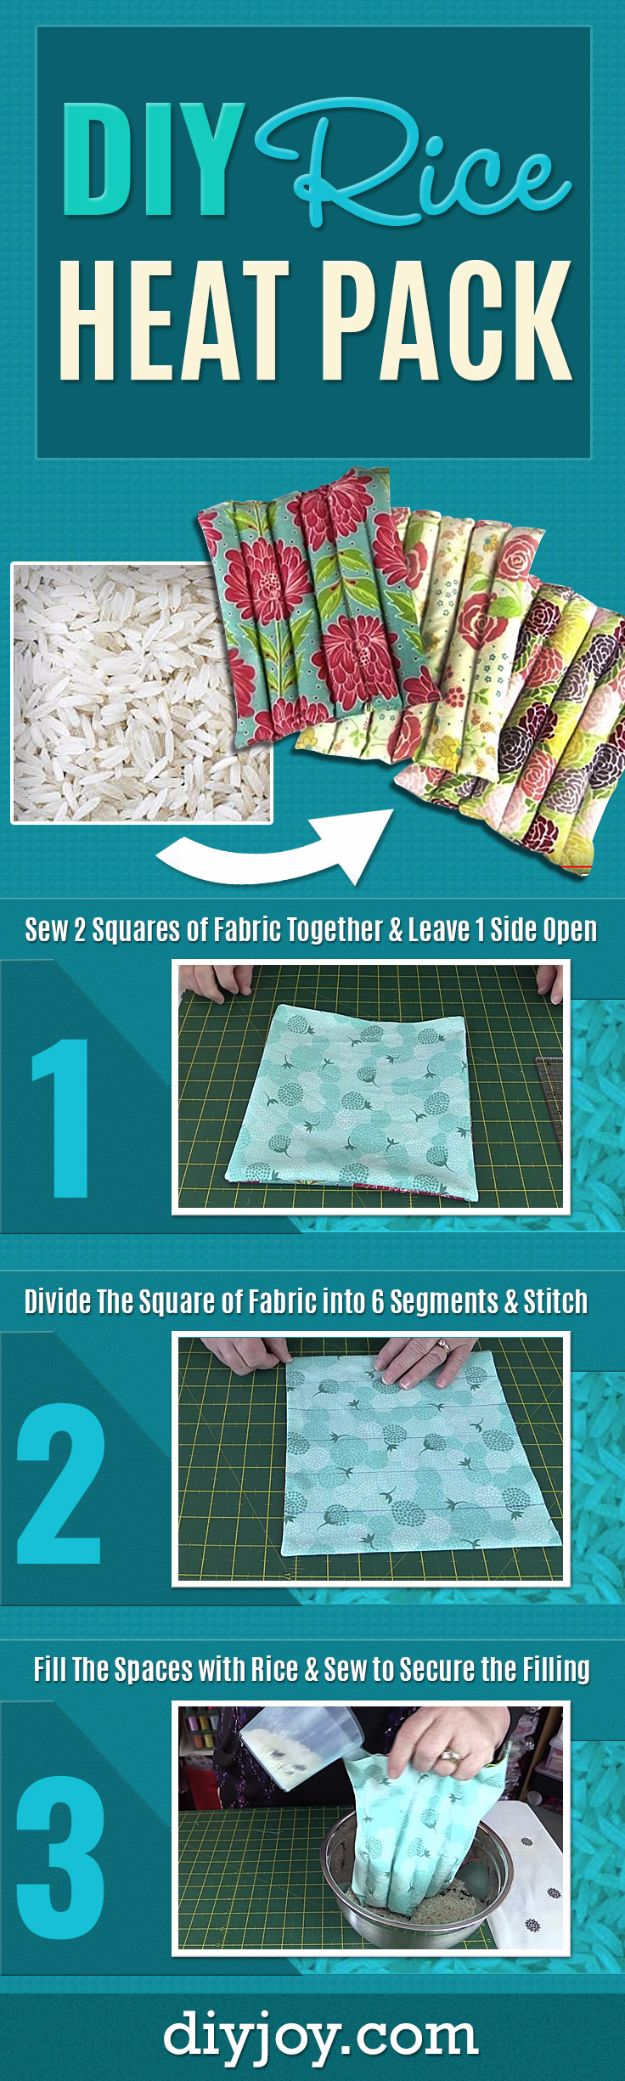 Cheap Crafts for Teens - DIY Rice Heat Pack - Inexpensive DIY Projects for Teenagers and Tweens - Cute Room Decor, School Supplies, Accessories and Clothing You Can Make On A Budget - Fun Dollar Store Crafts - Cool DIY Gift Ideas for Christmas, Birthdays, BFF gifts and more - Step by Step Tutorials and Instructions #cheapcrafts #dollarstorecrafts #teencrafts #dollartreecrafts